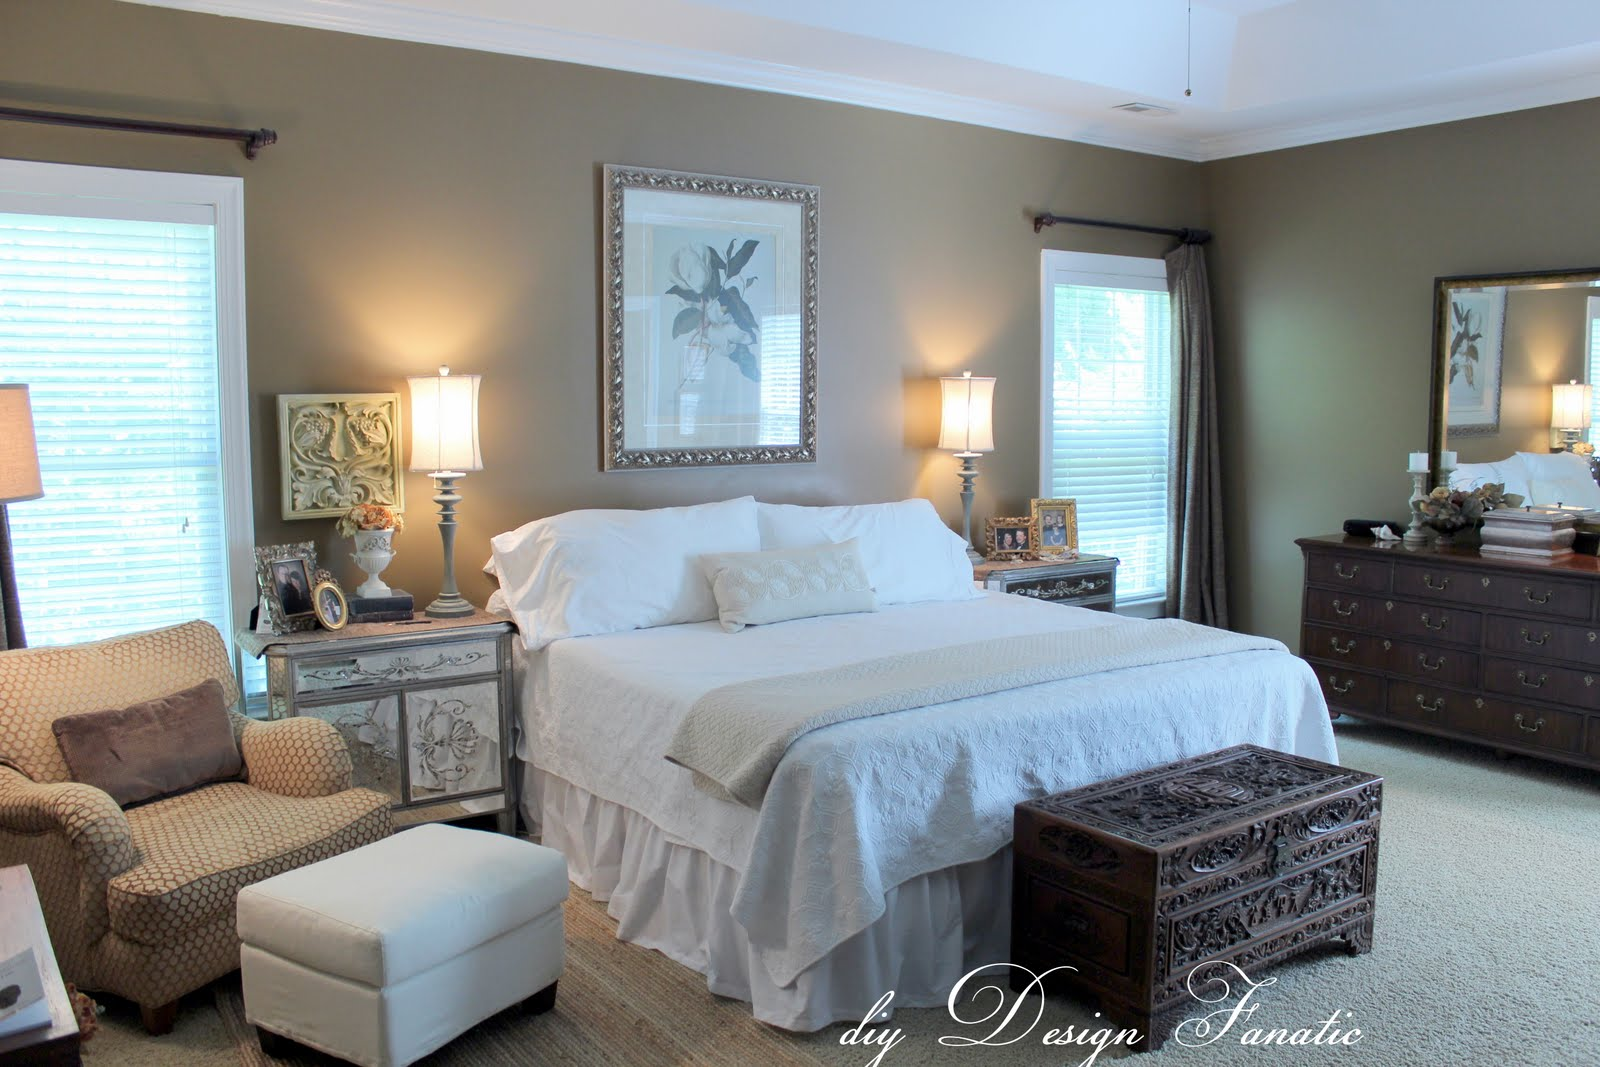 Diy design fanatic decorating a master bedroom on a budget Diy master bedroom makeover